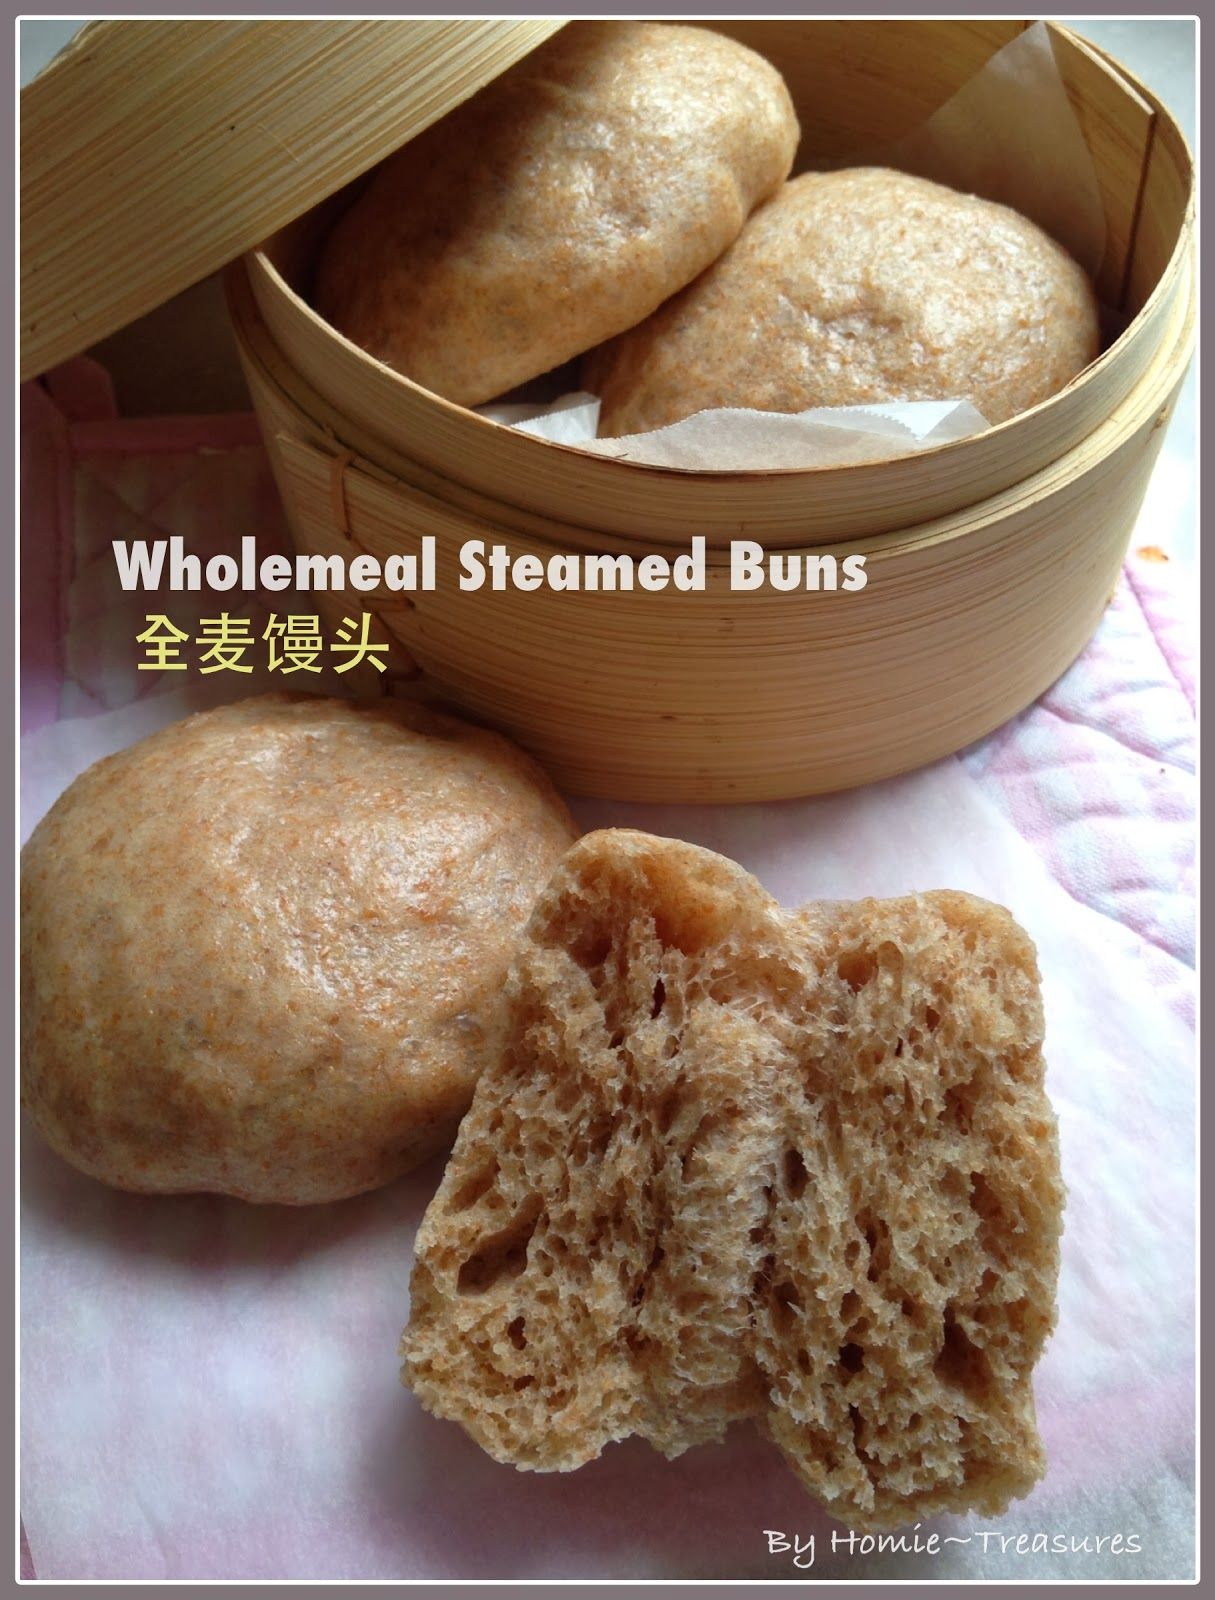 My humble piece of Art: Wholemeal Steamed Buns (Mantou) 全麦馒头